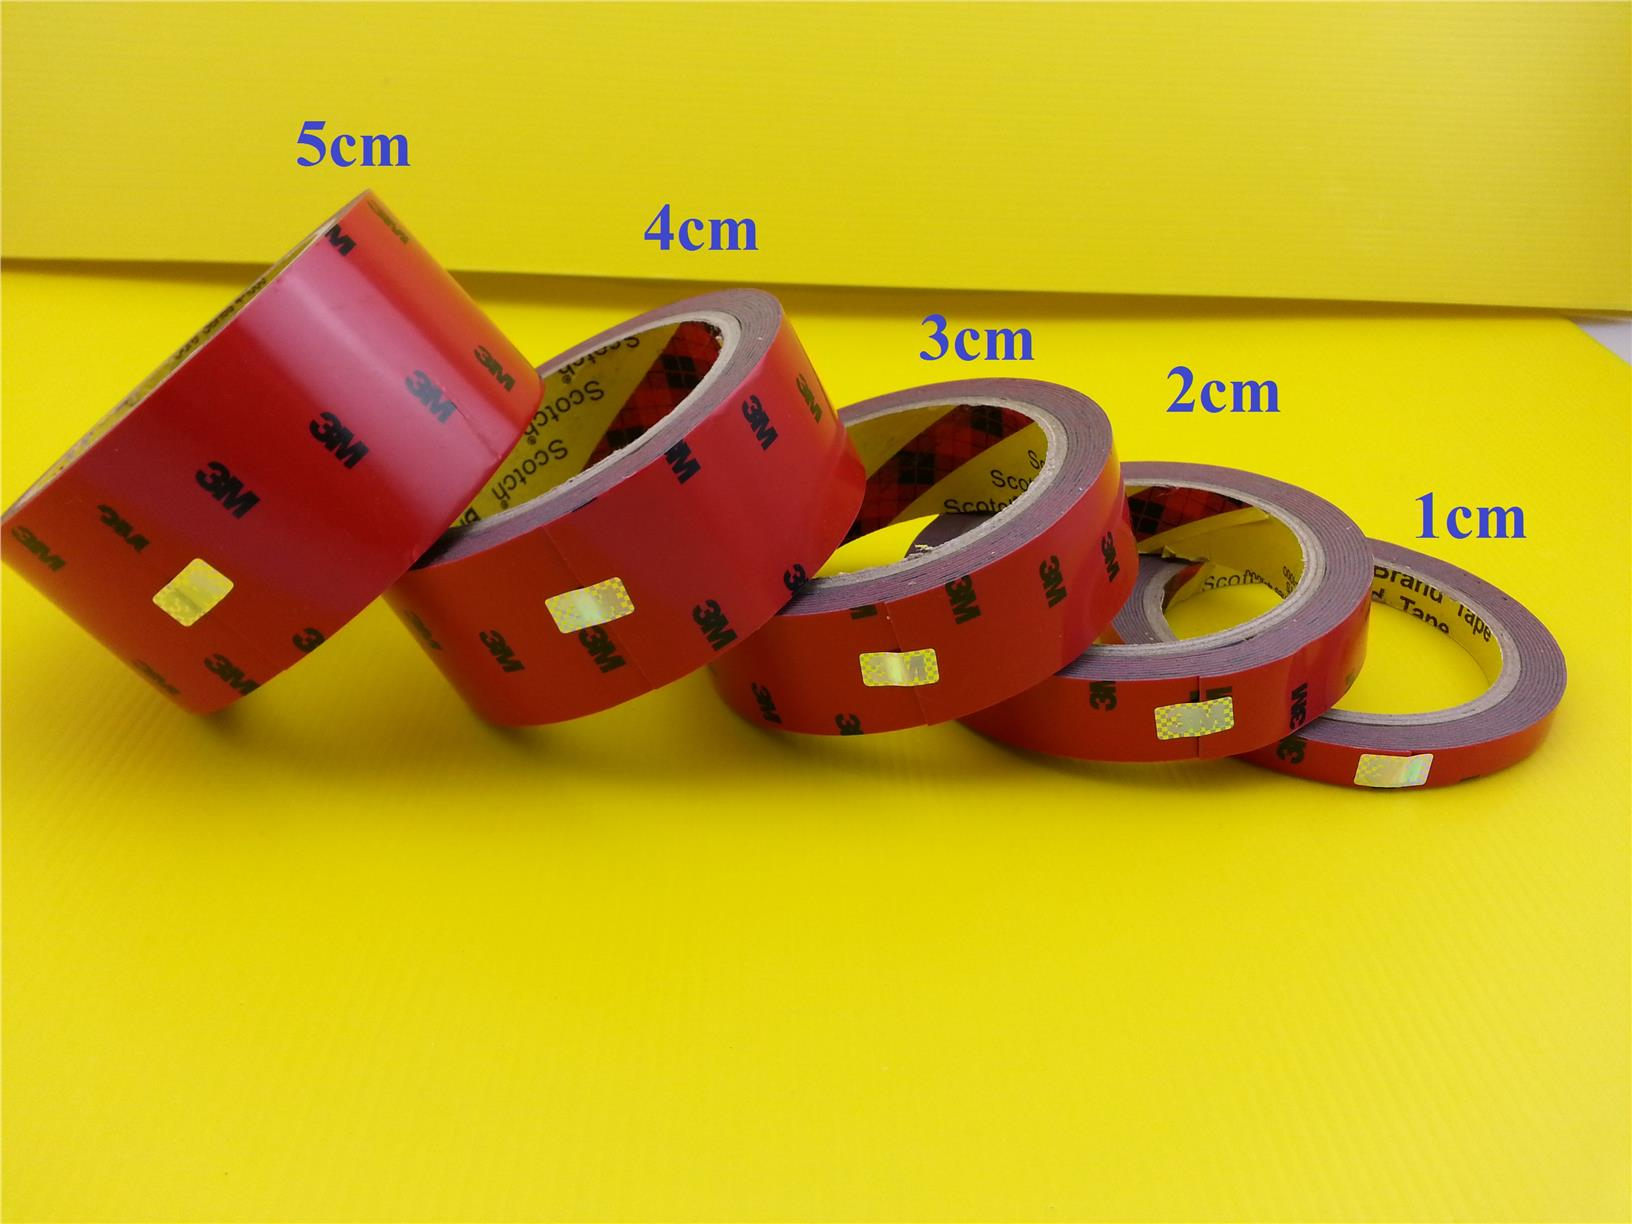 1cm/2cm/3cm/4cm/5cm 3M Double Sided Tape Adhesive Sticker Glue.